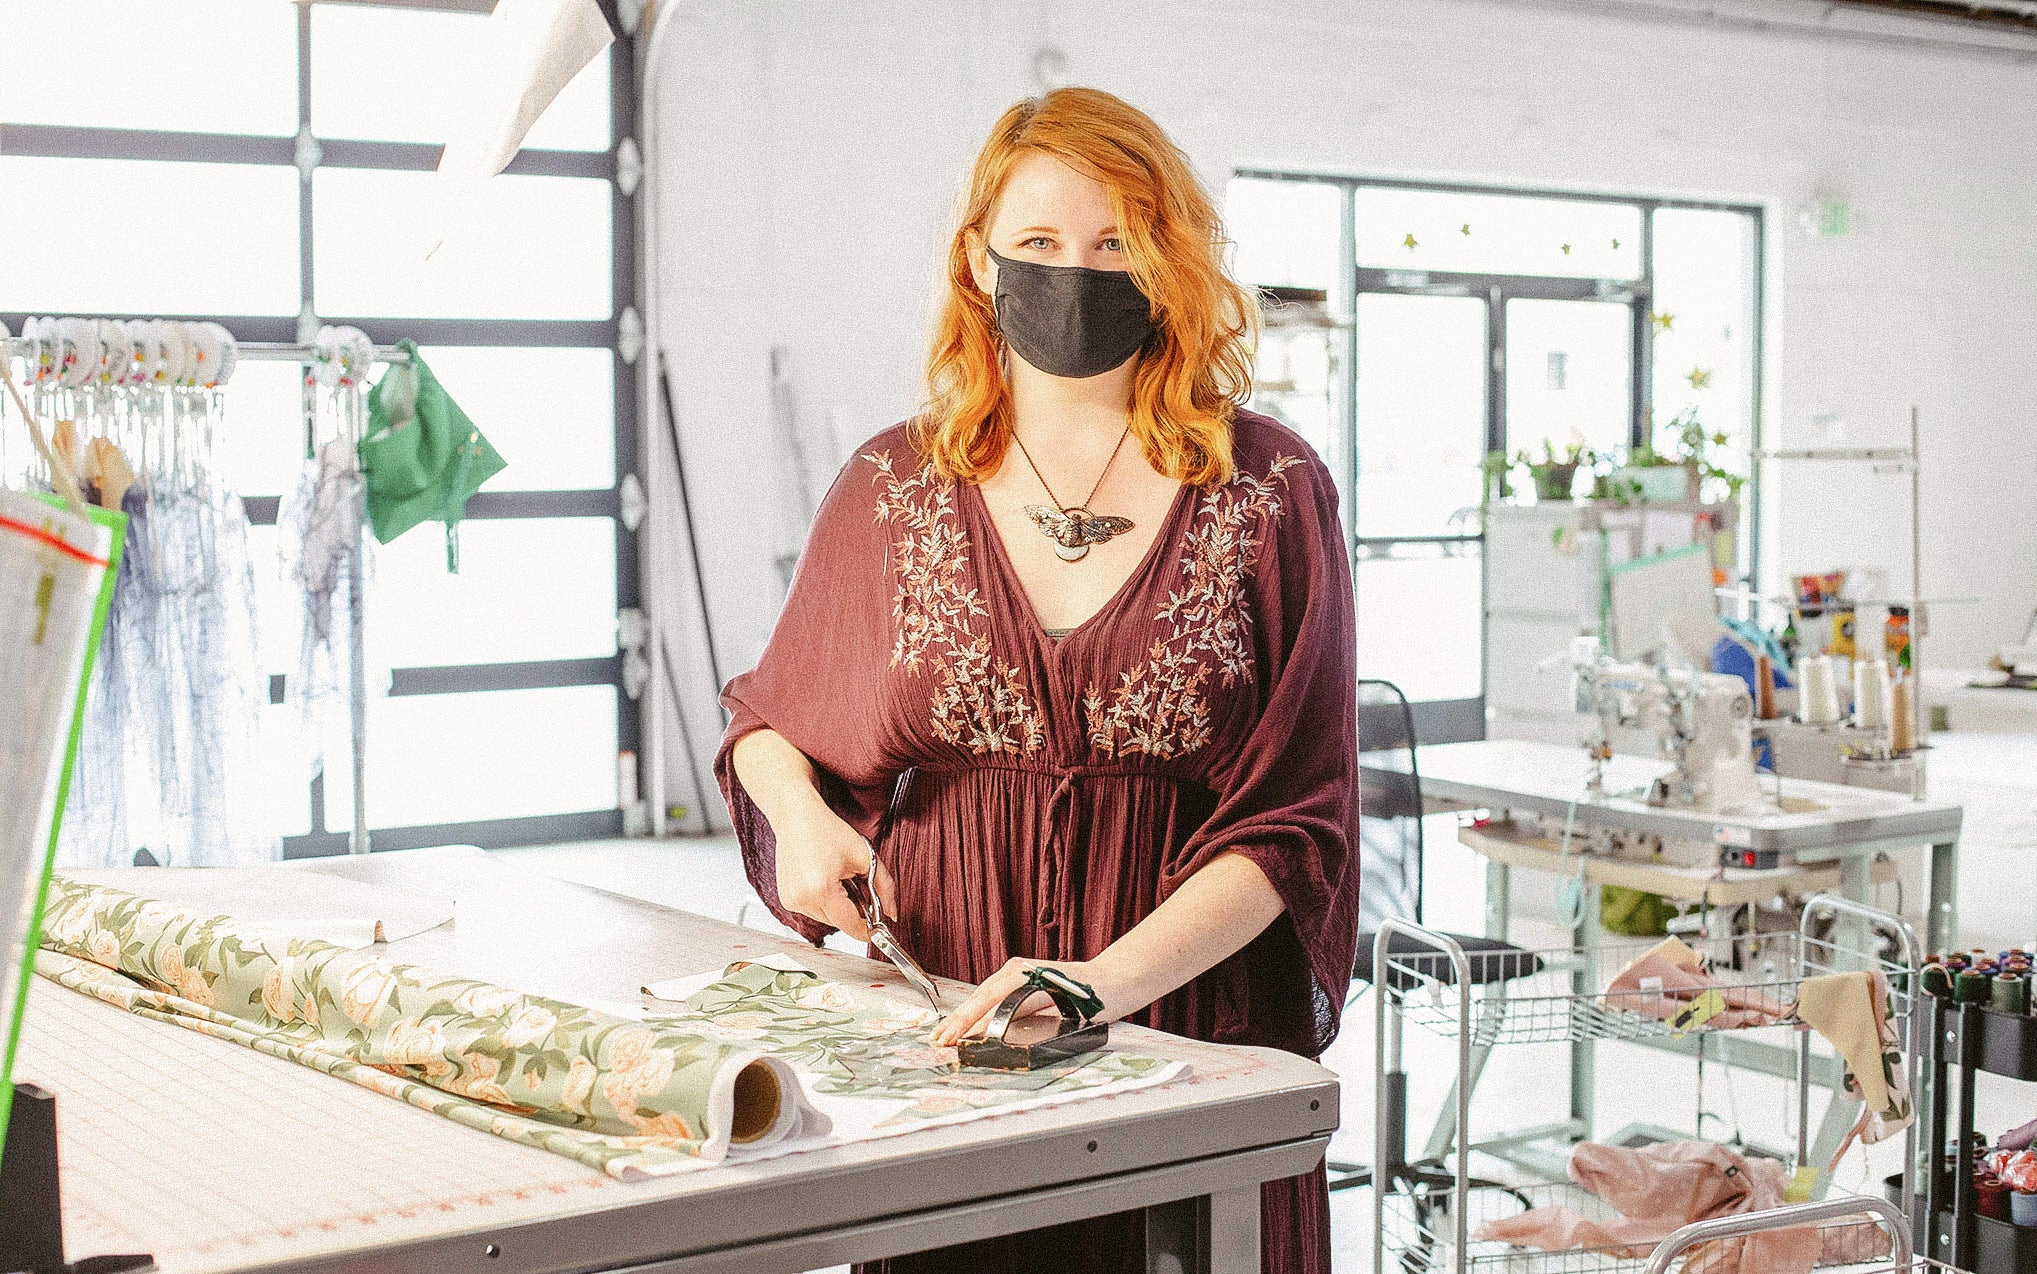 Taylor stands at a cutting table with scissors in her hand and a roll of fabric next to her.